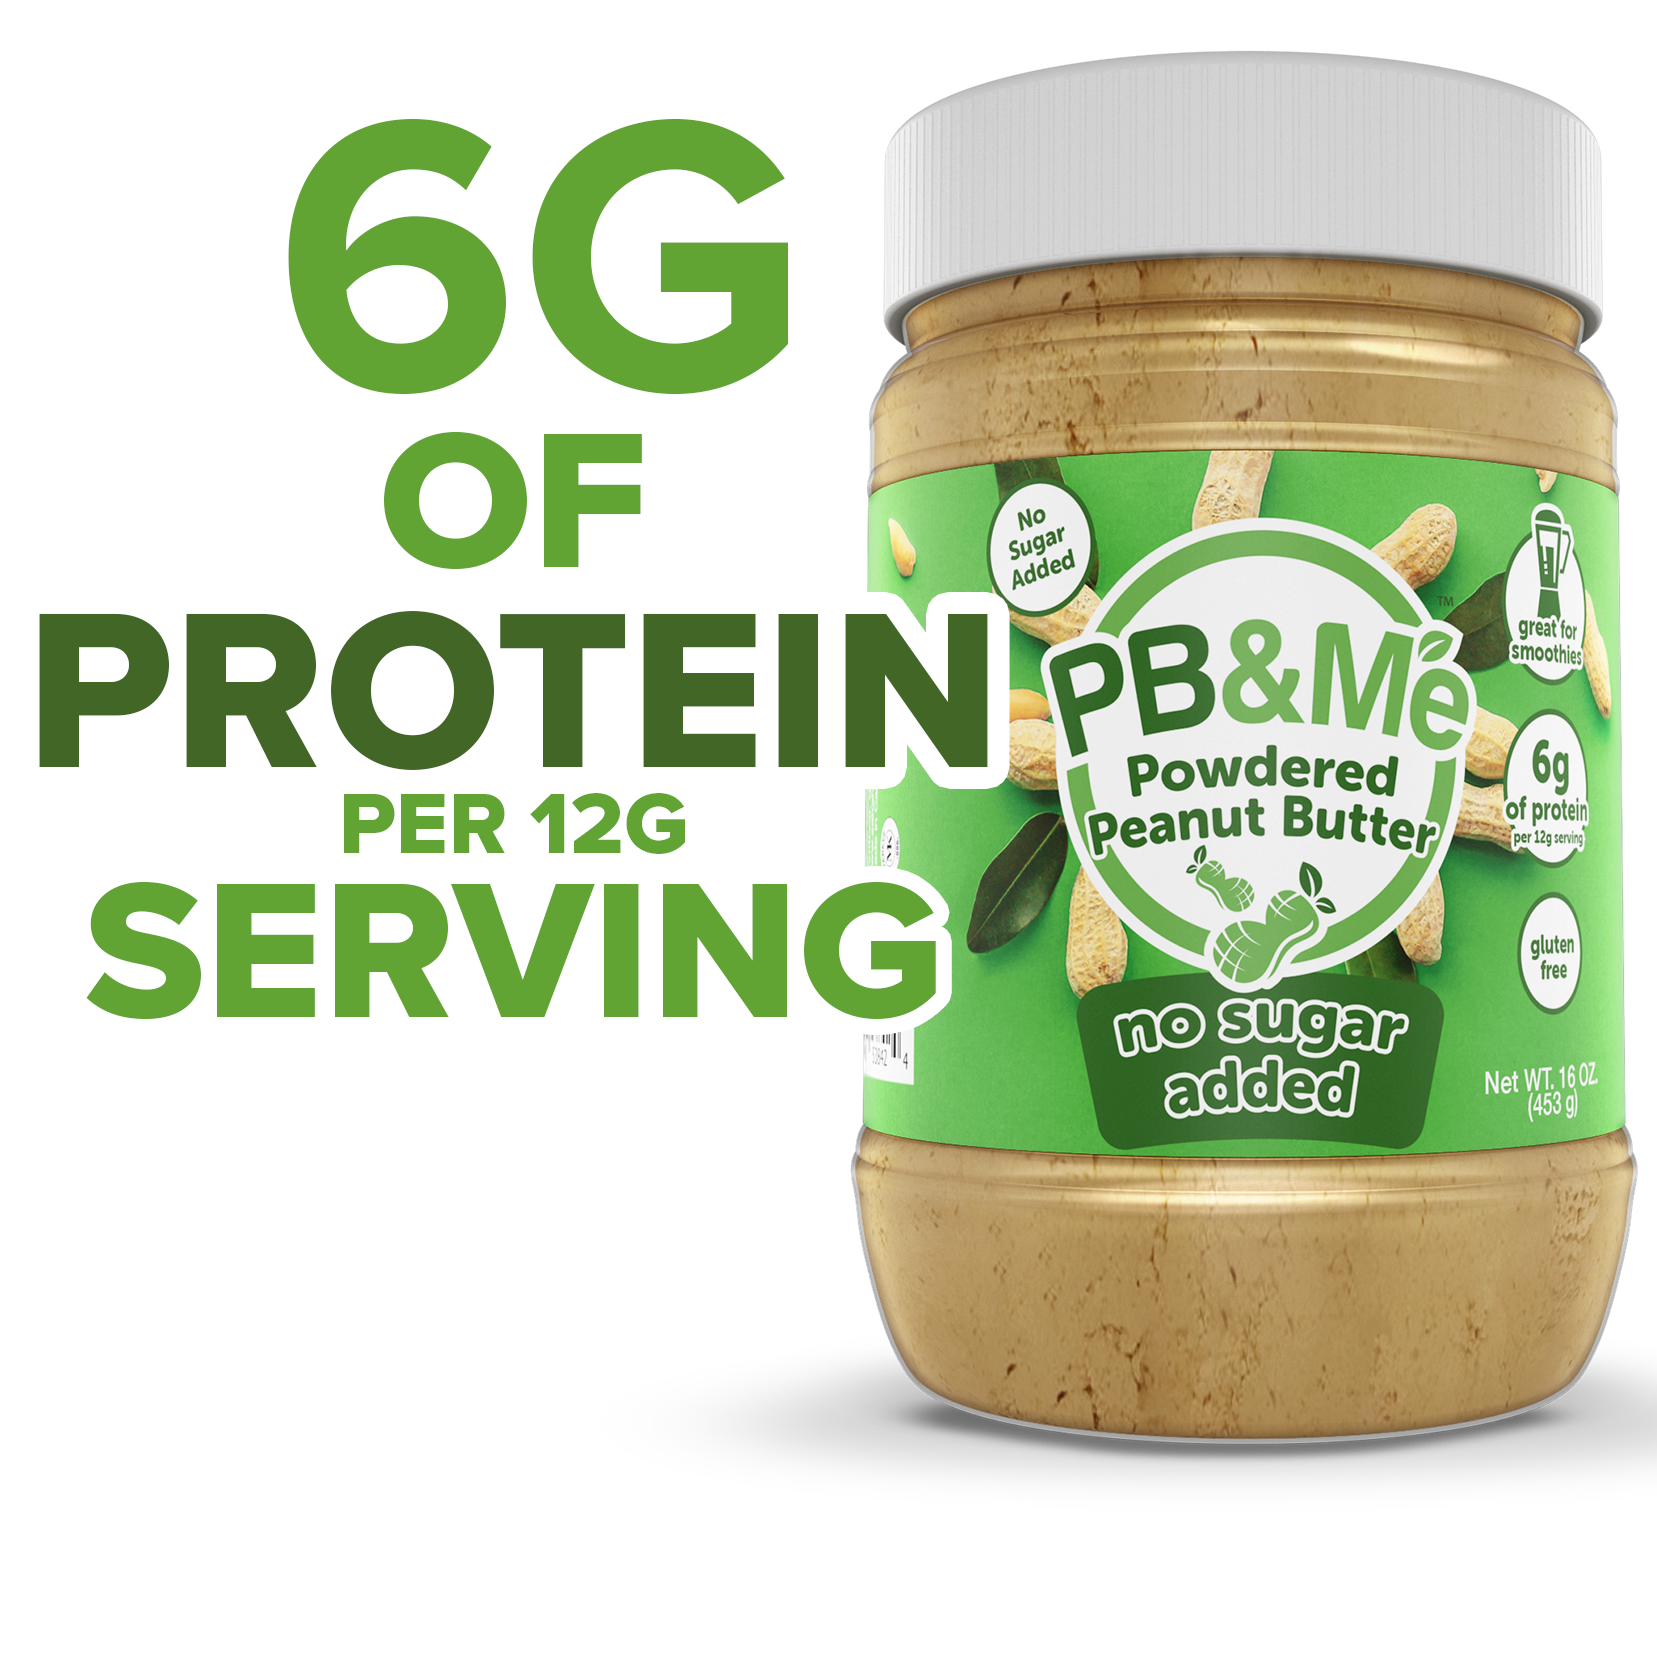 Powdered Peanut Butter, No Sugar Added, 16oz